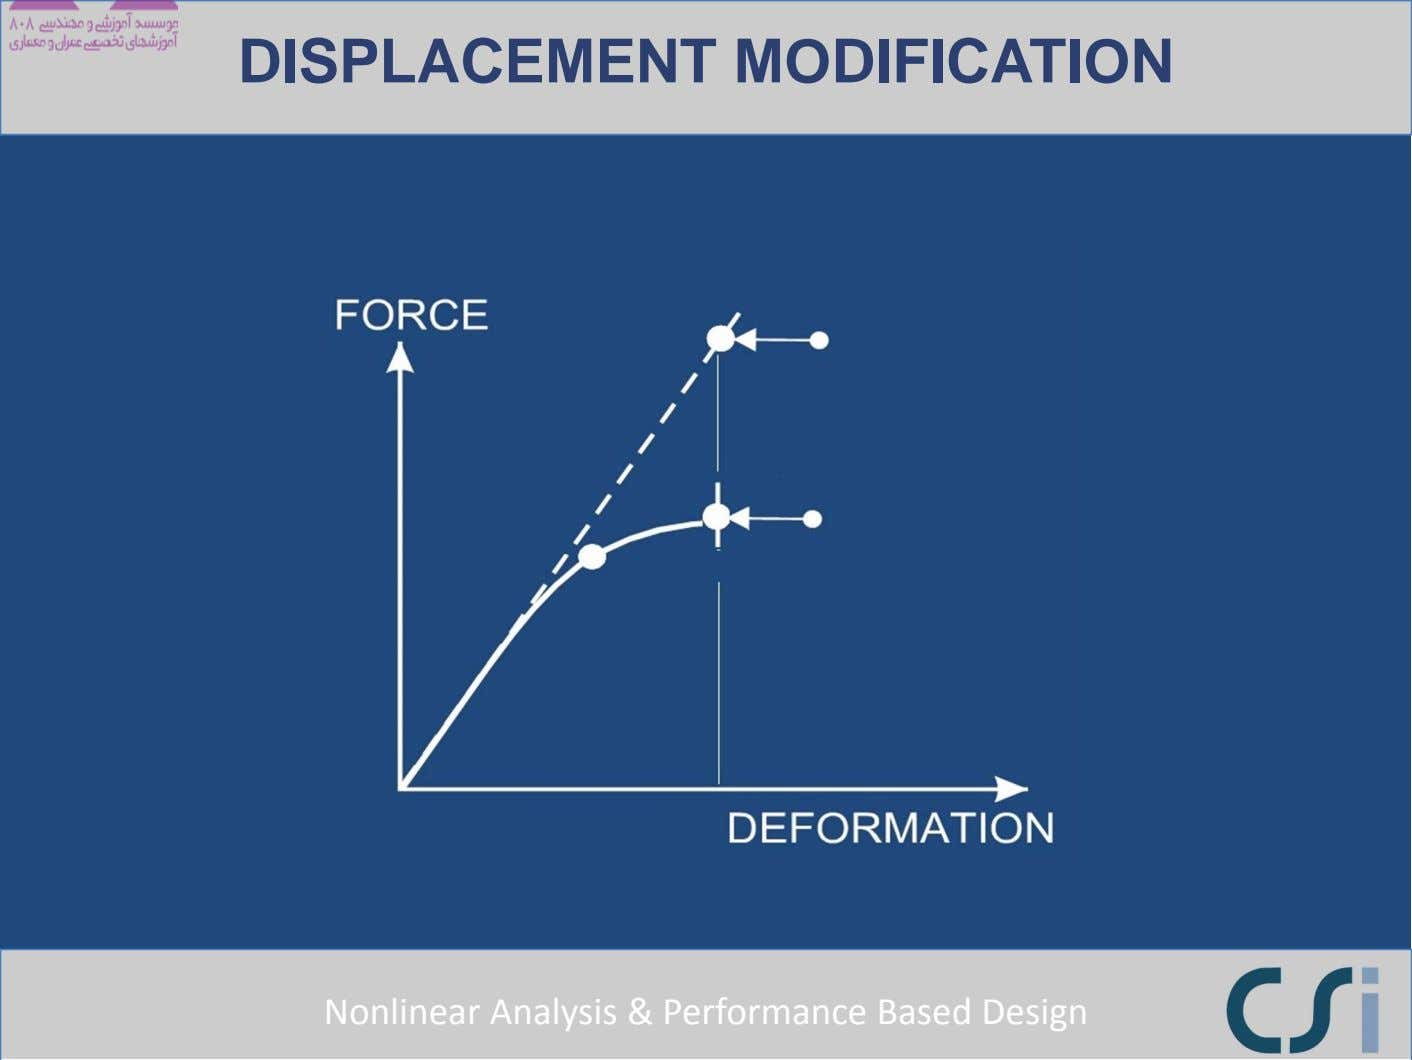 DISPLACEMENT MODIFICATION Nonlinear Analysis & Performance Based Design